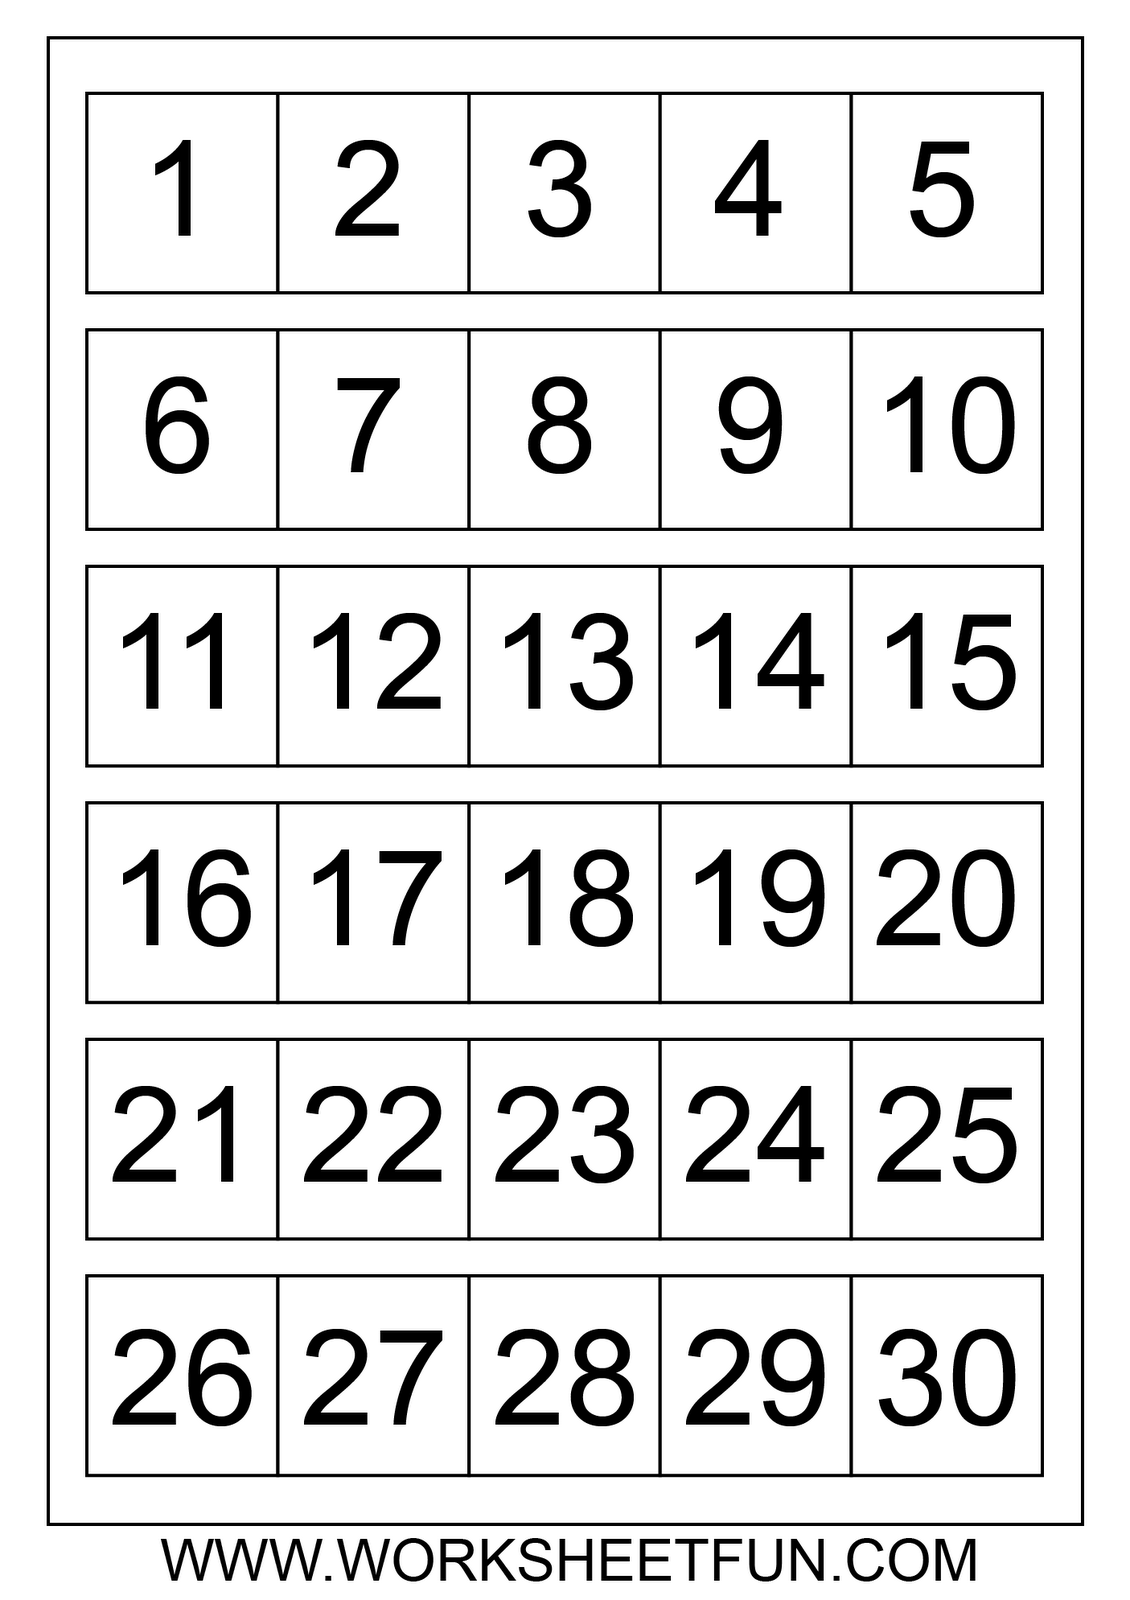 Worksheet Printable Numbers 1-20 number counting chart 1 20 pritnable count write their large printable numbers 100 to dot with puzzles fill in the